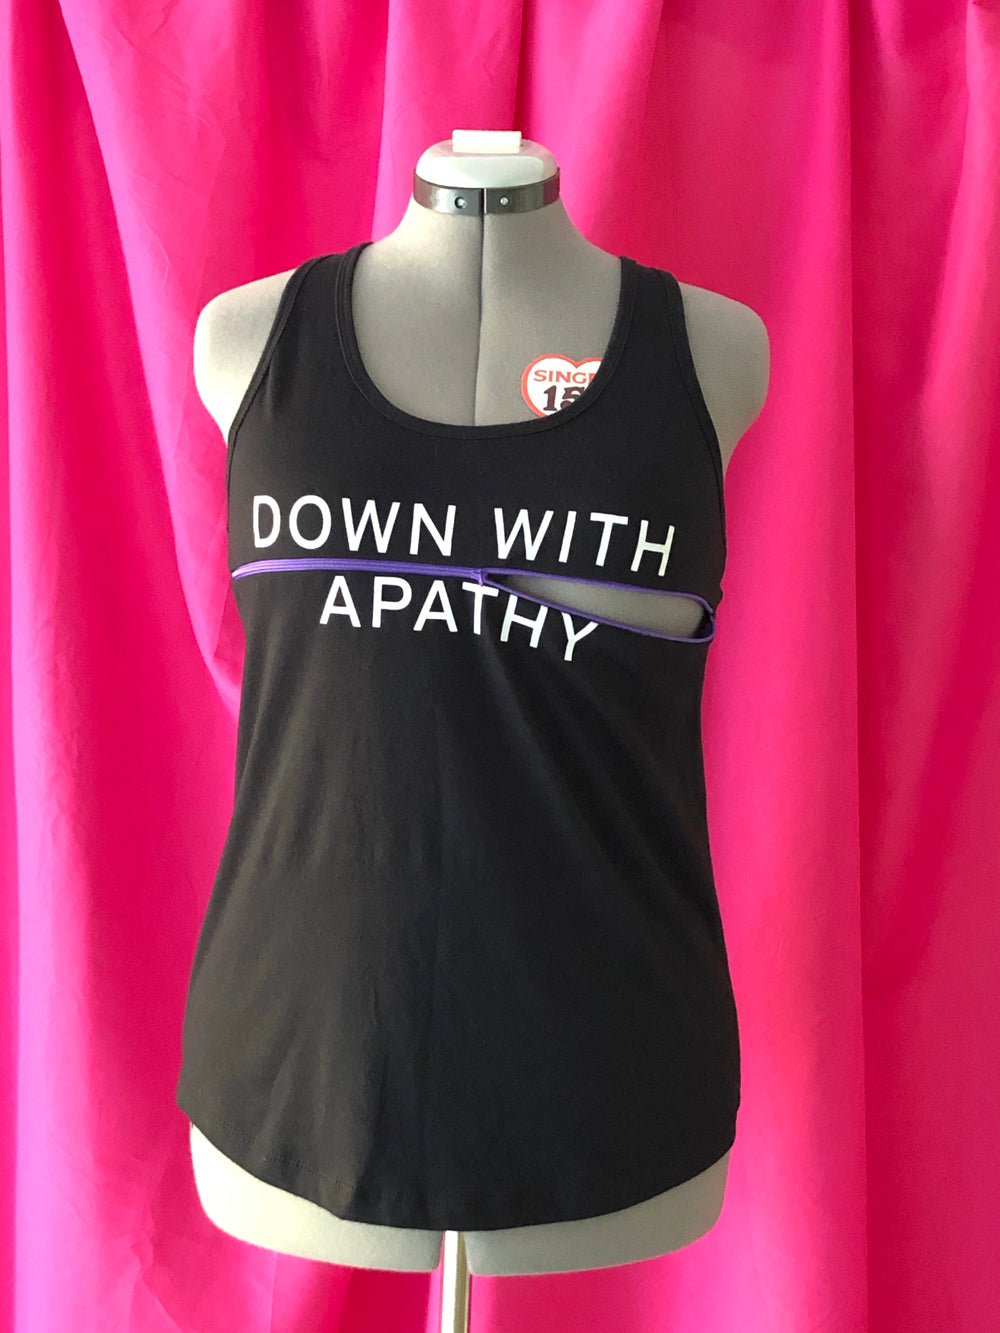 Down With Apathy Bodyfeeding Shirt (L)